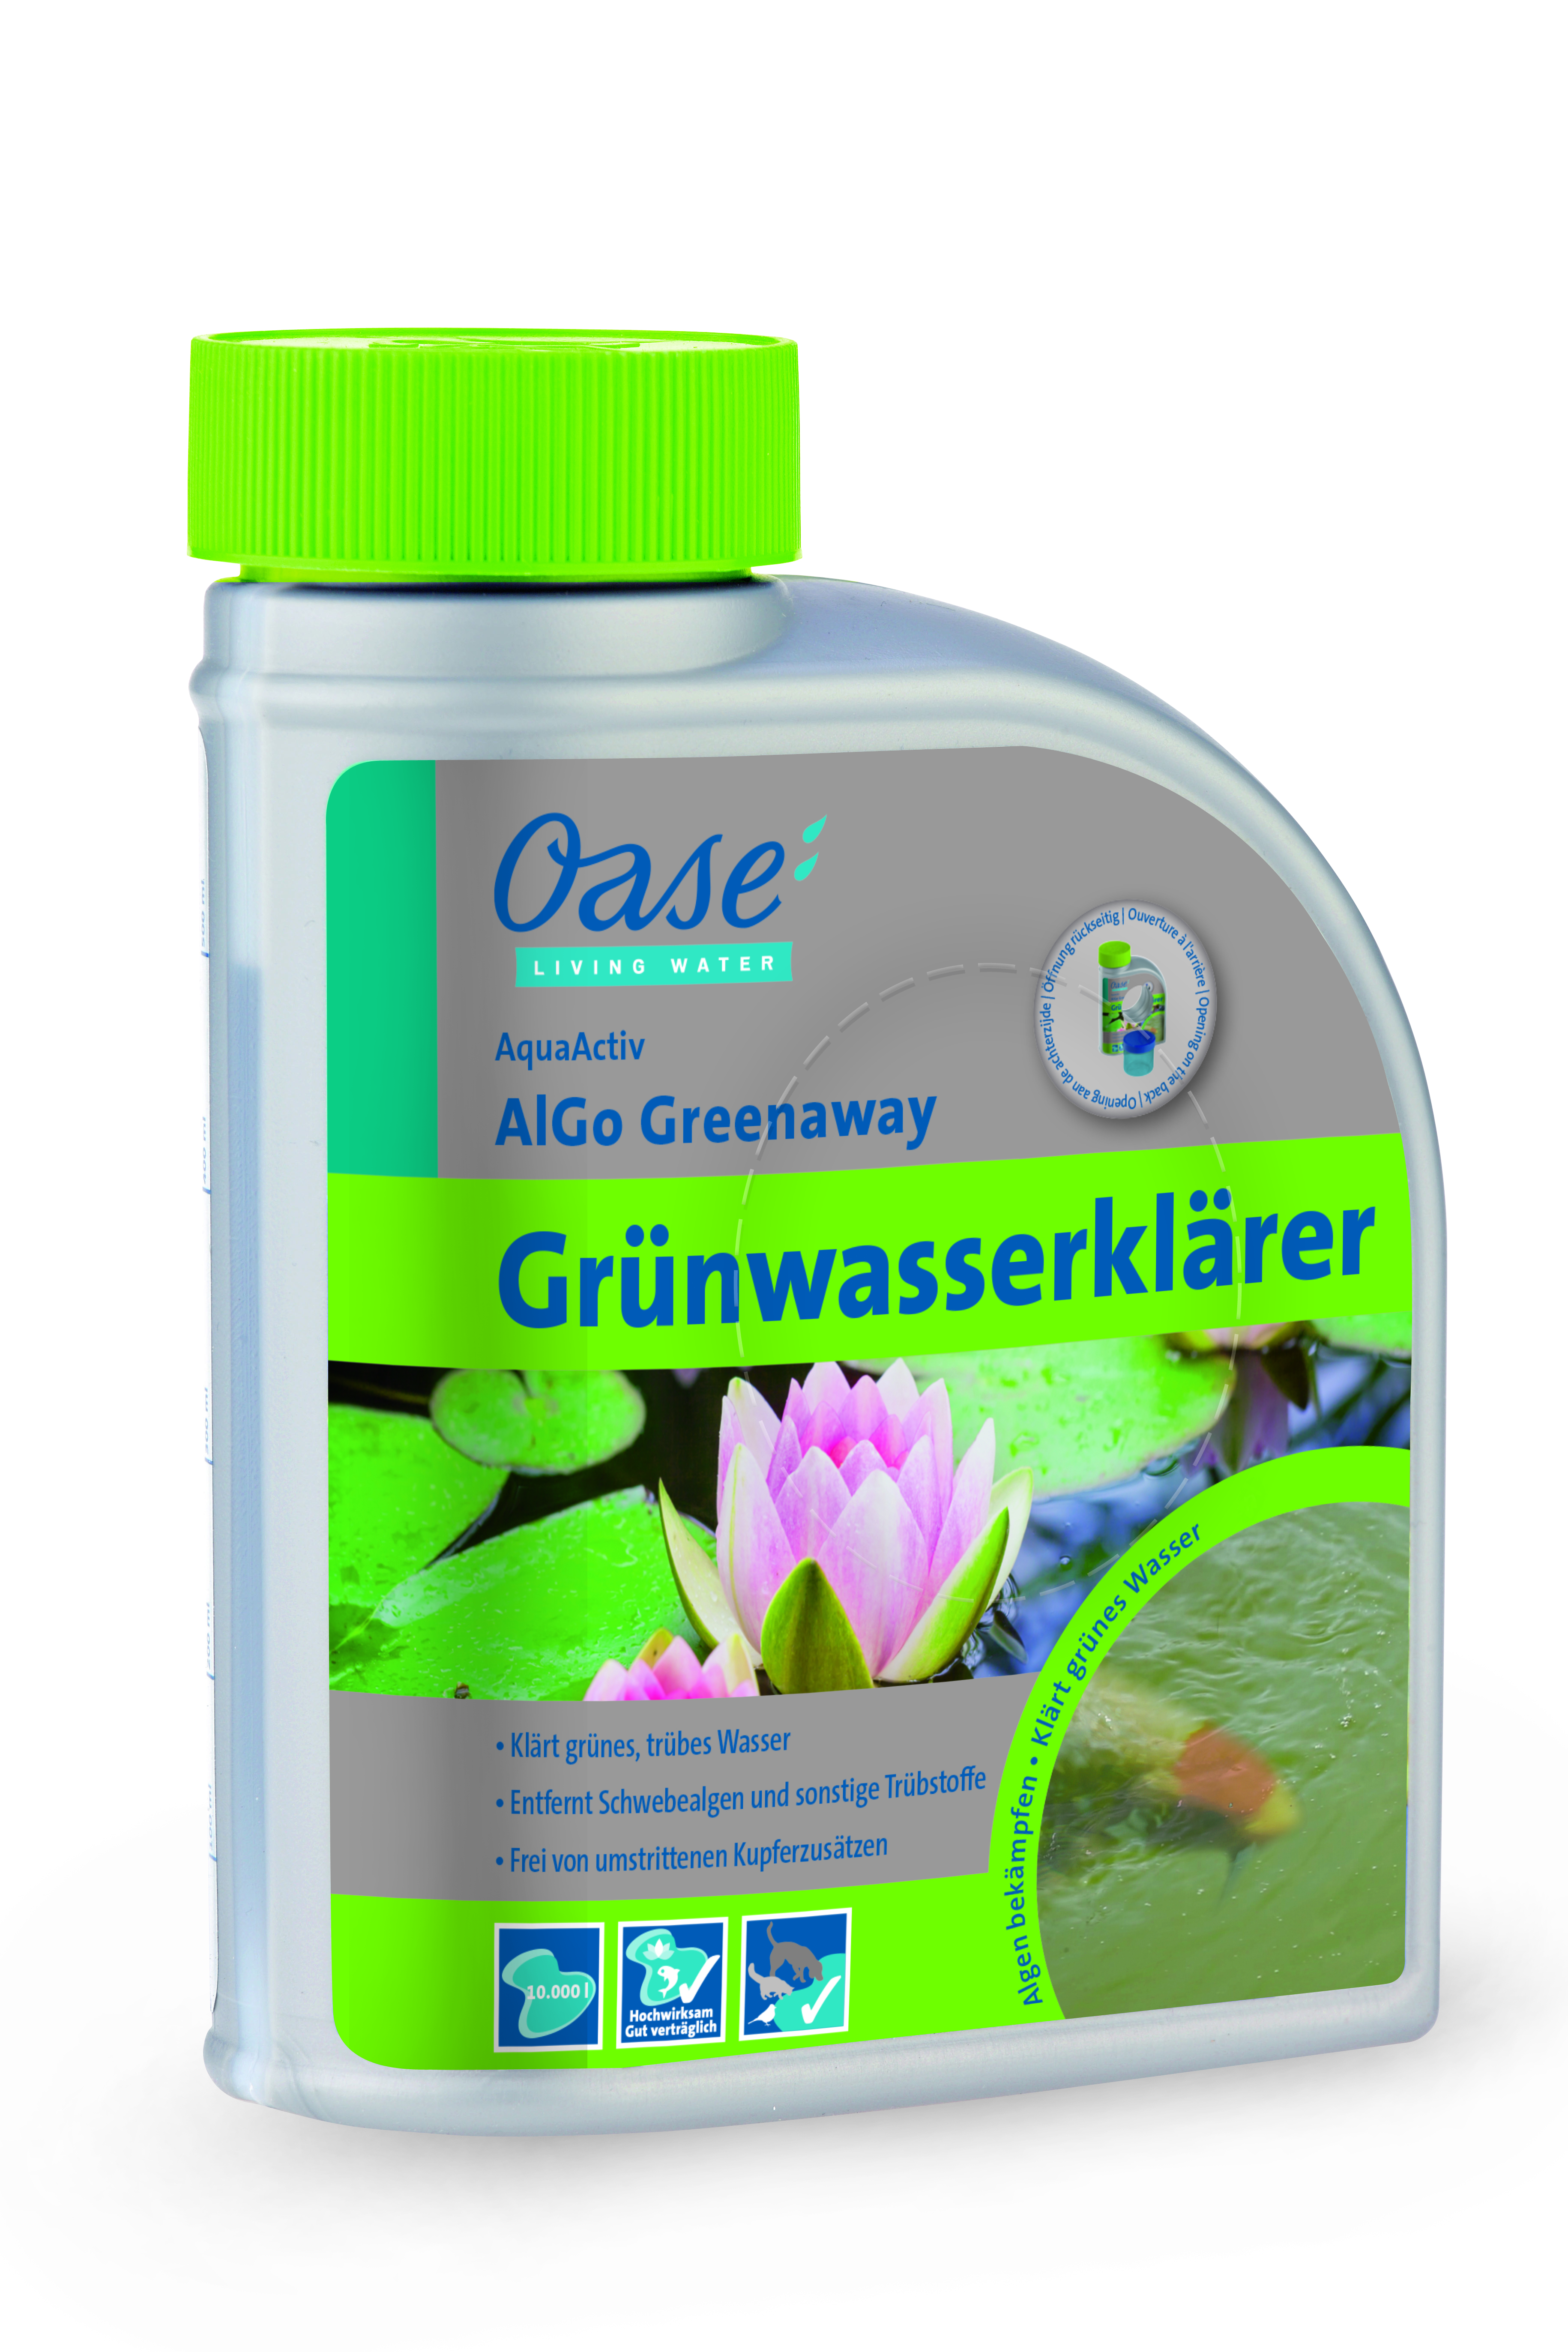 oase aquaactiv algo greenaway 500 ml teichundgarten24. Black Bedroom Furniture Sets. Home Design Ideas